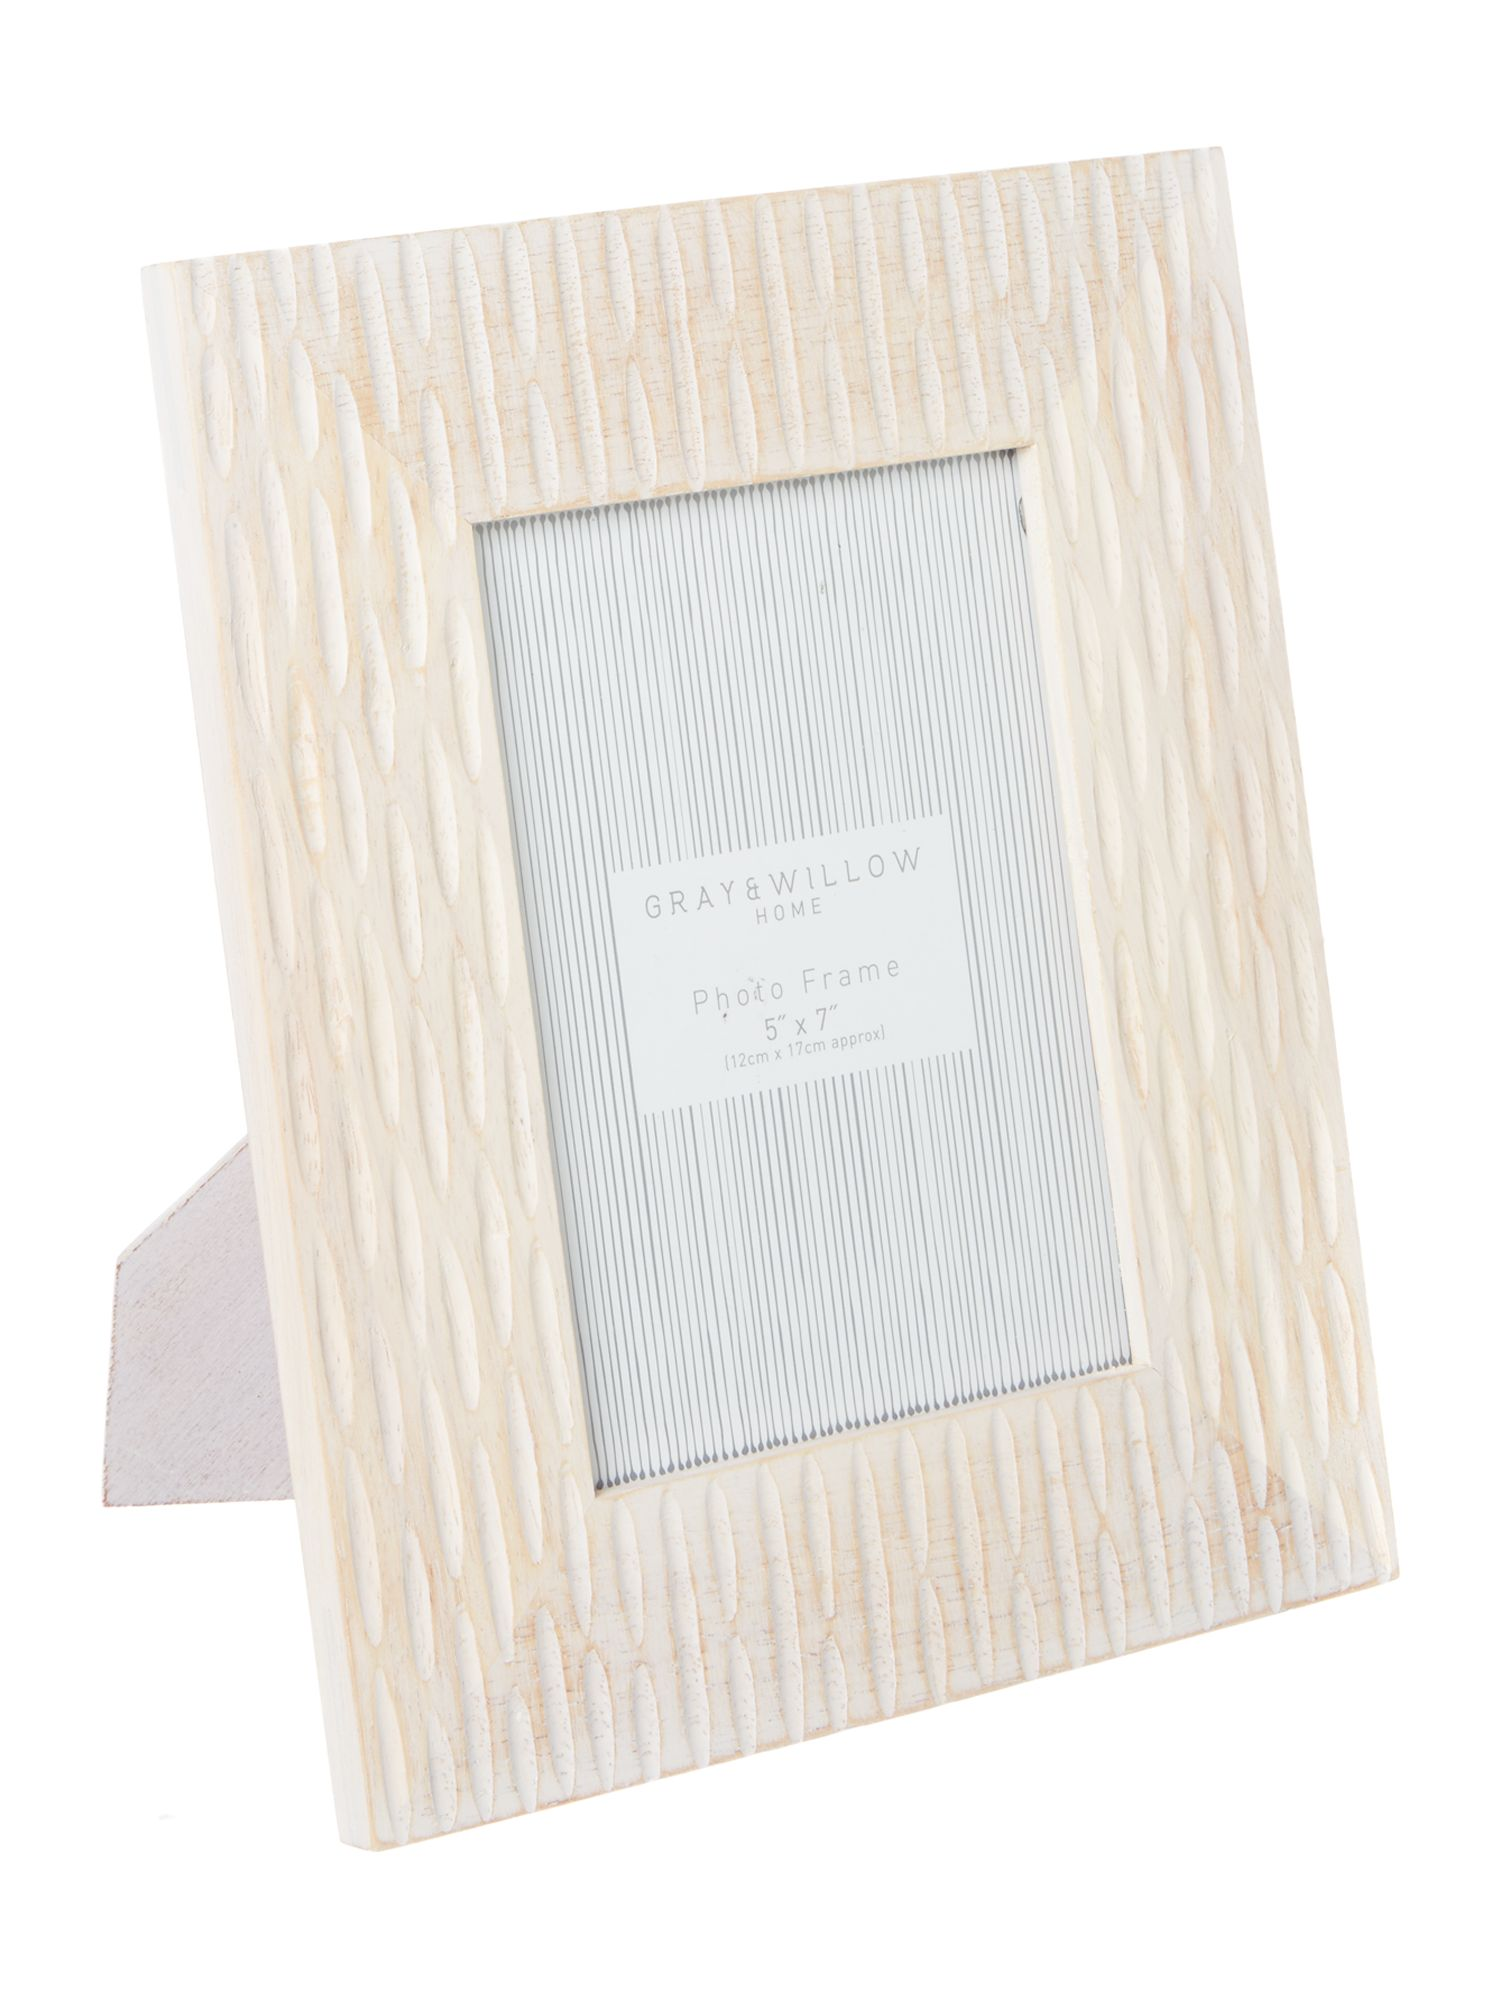 Gray & Willow Gray & Willow White Wash Carved Frames 5x7